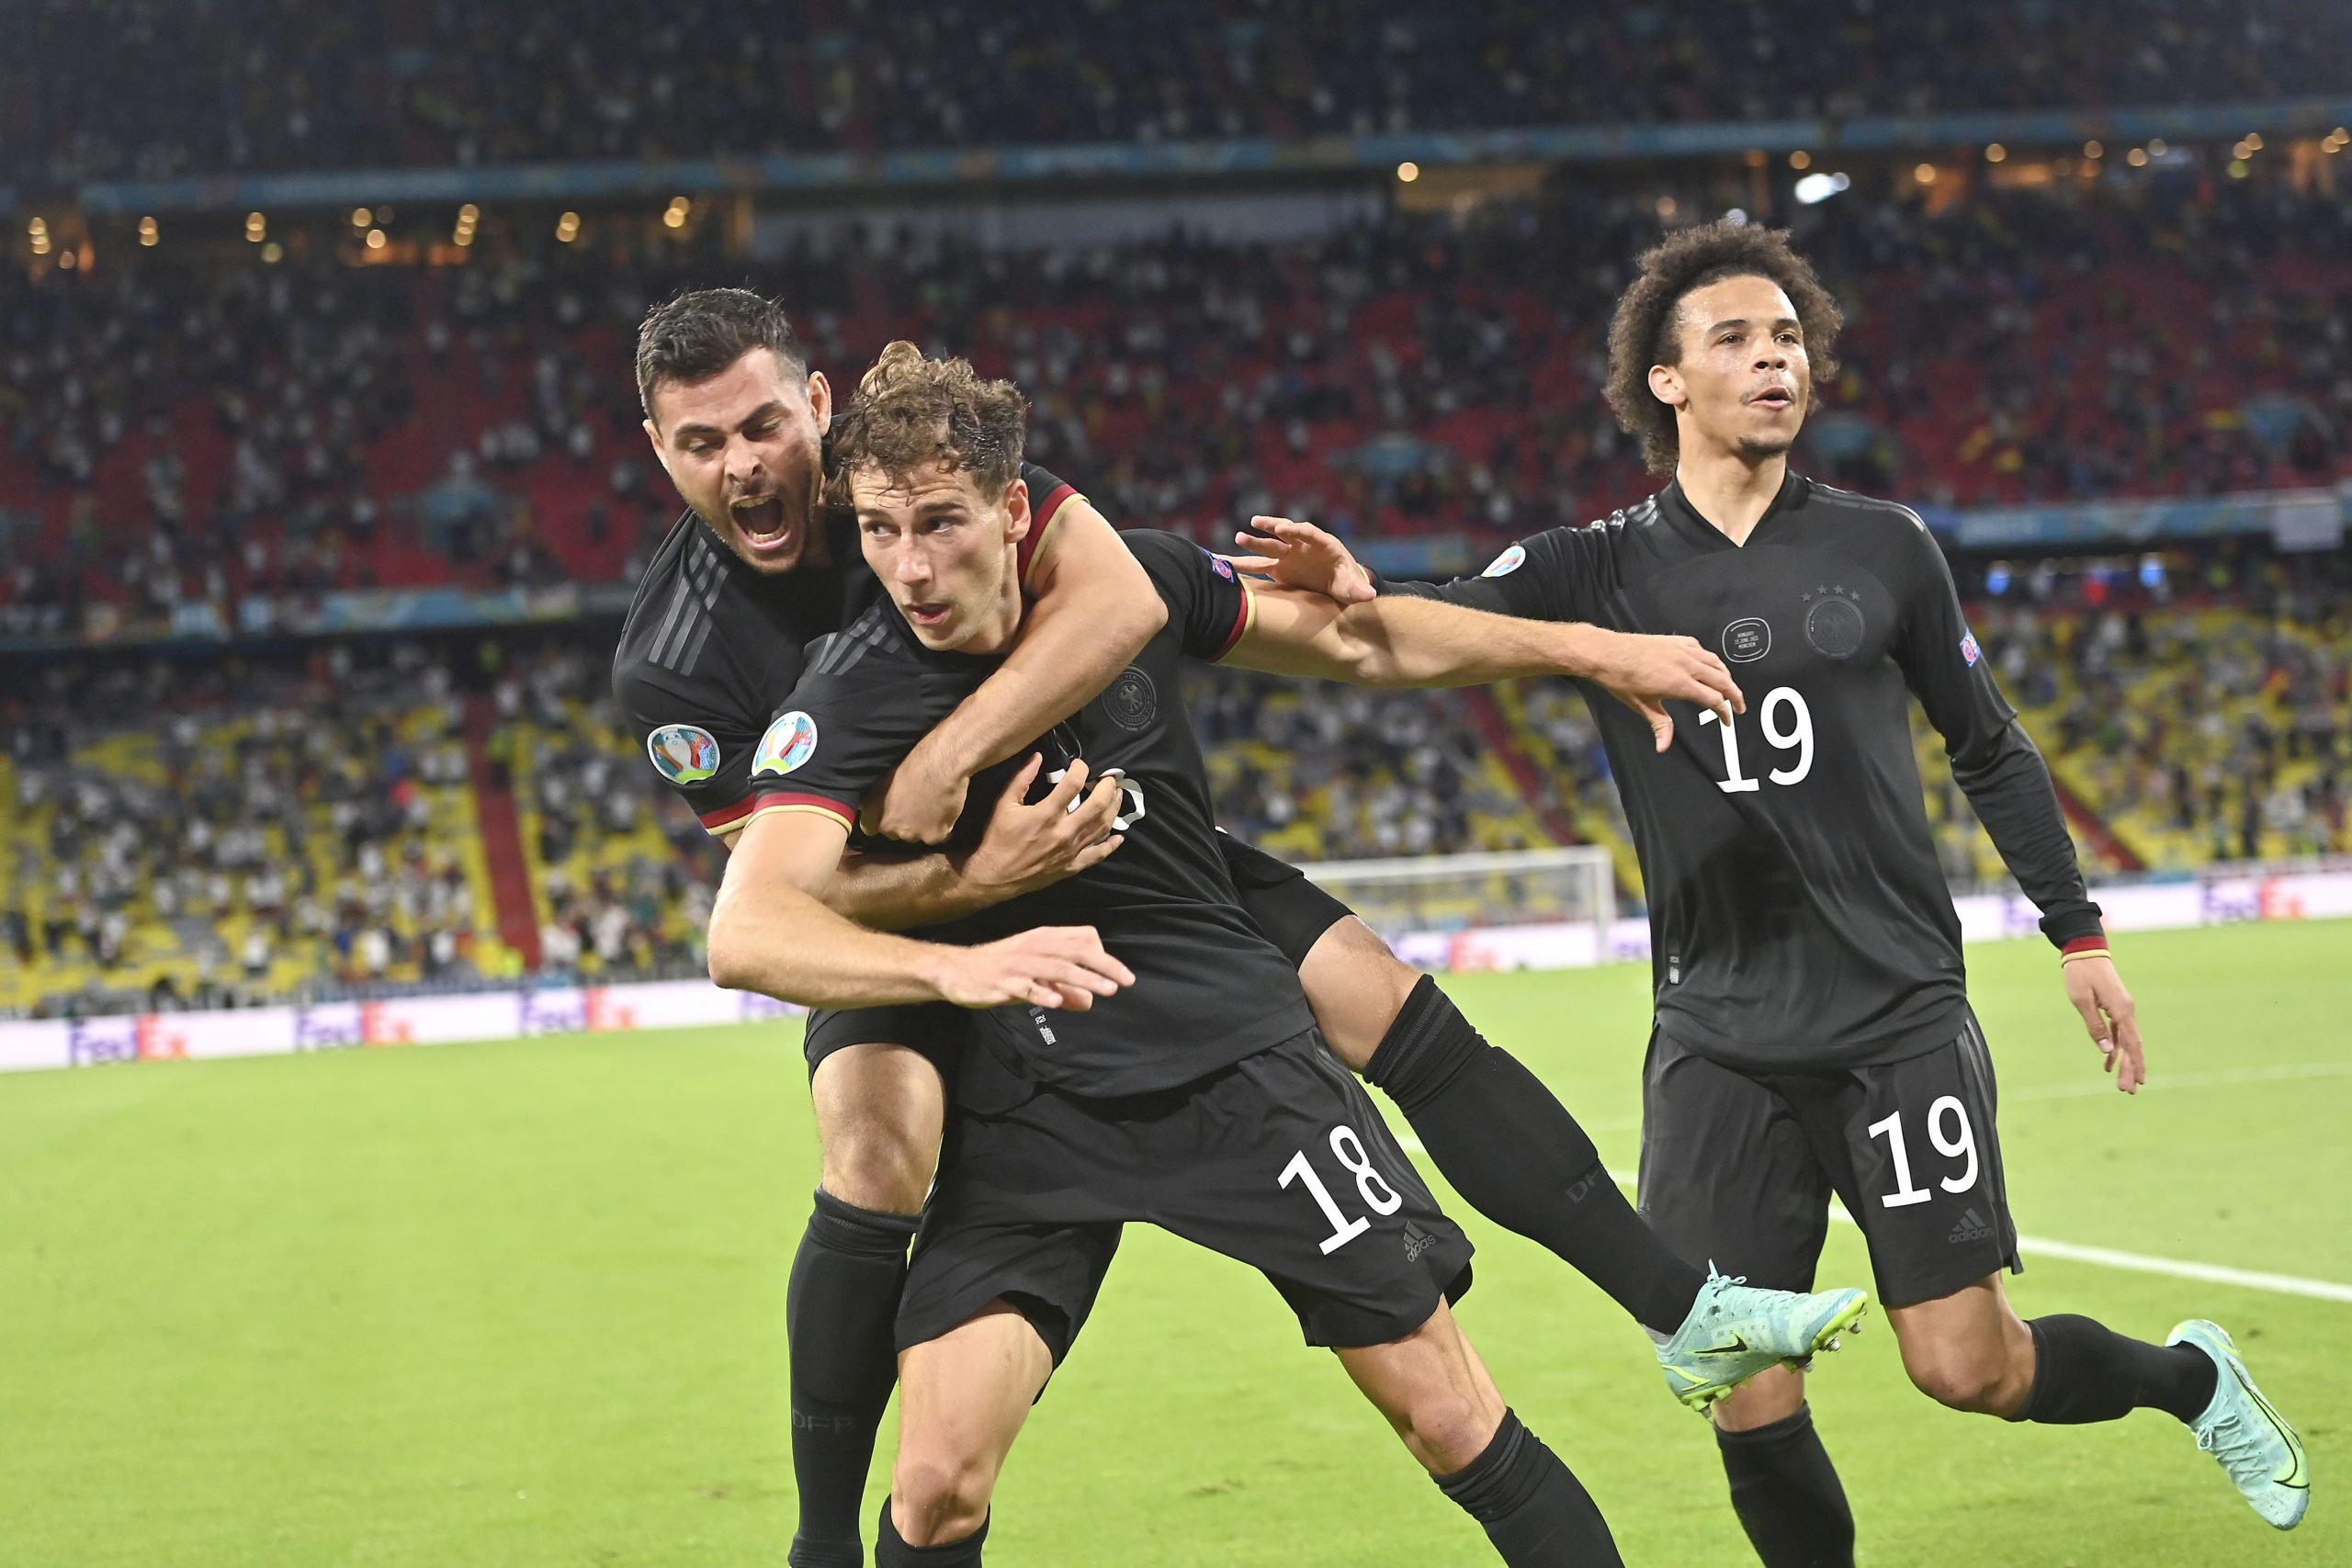 Germany celebrate a goal at Euro 2020 against Hungary